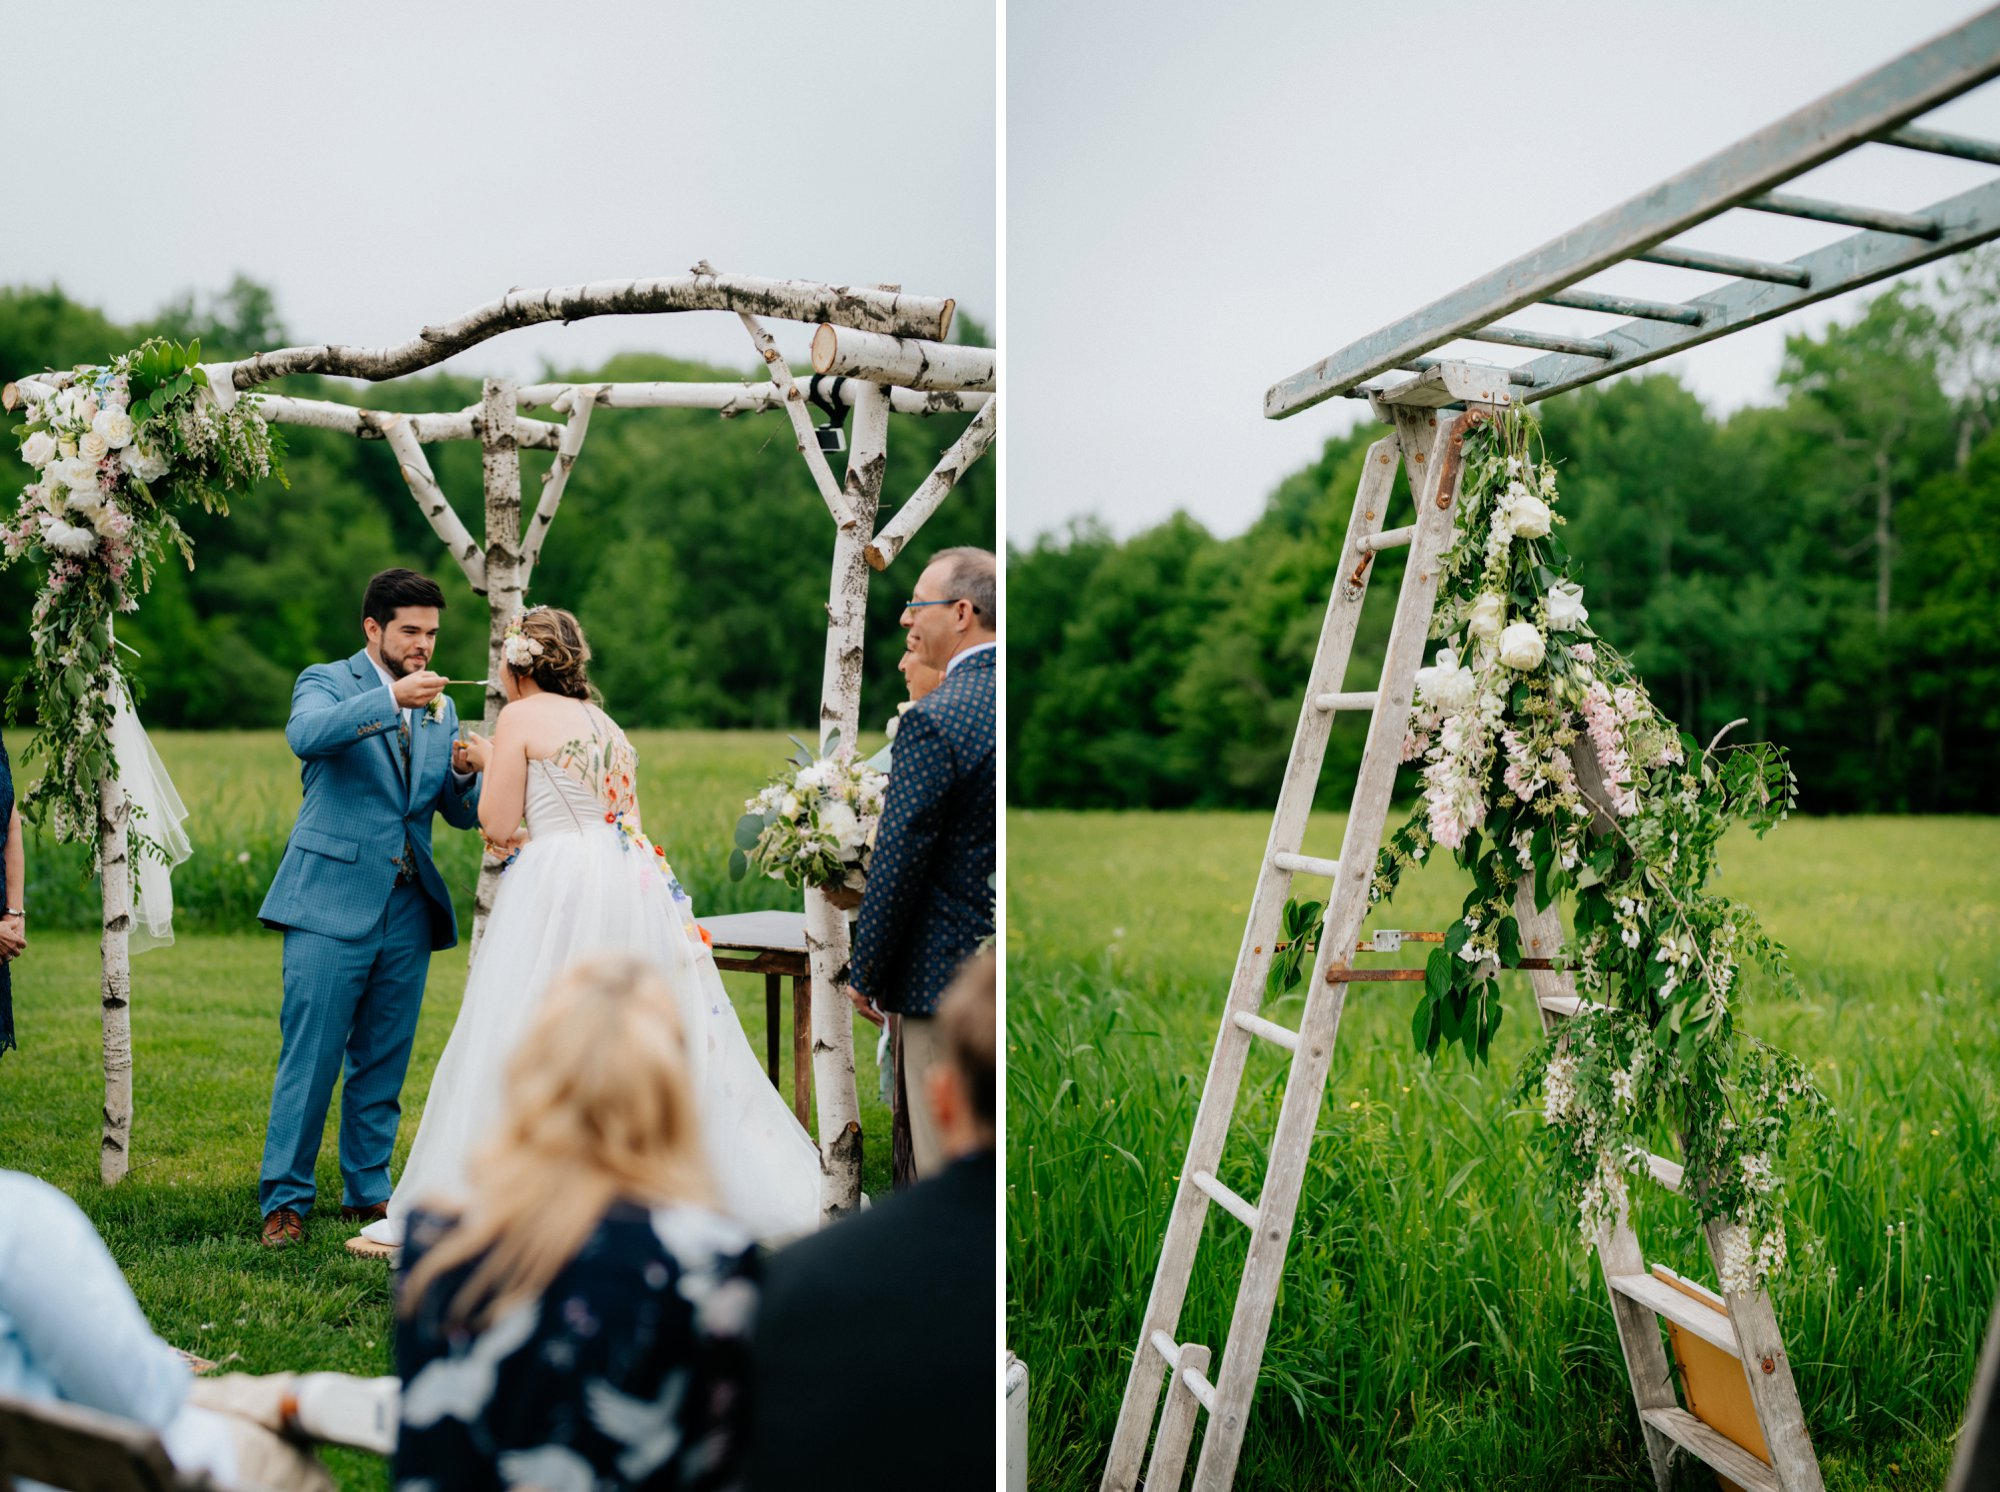 Fiddle Lake Farm Philadelphia Pennsylvania Misty Rustic Wedding with Lush Florals Ceremony